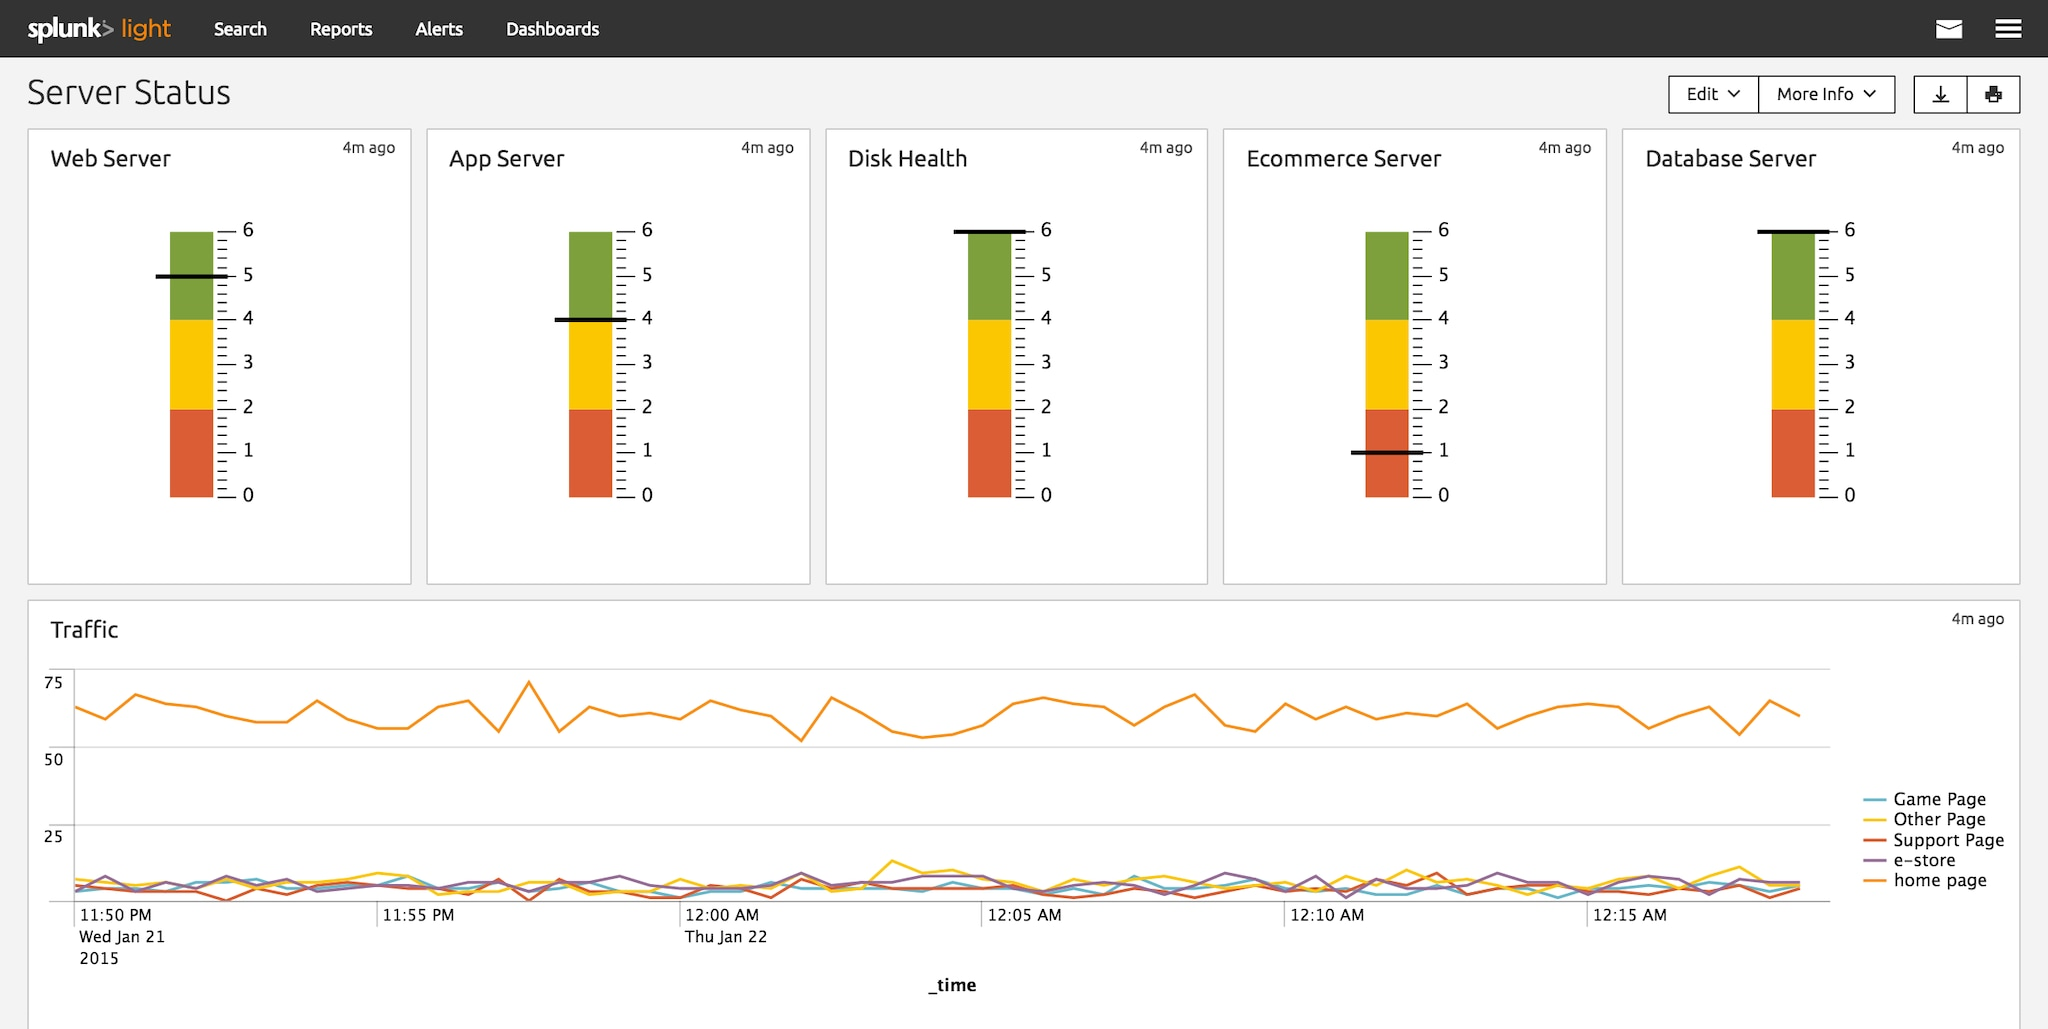 Introducing Splunk Light: The Power of Splunk for Small IT Environments